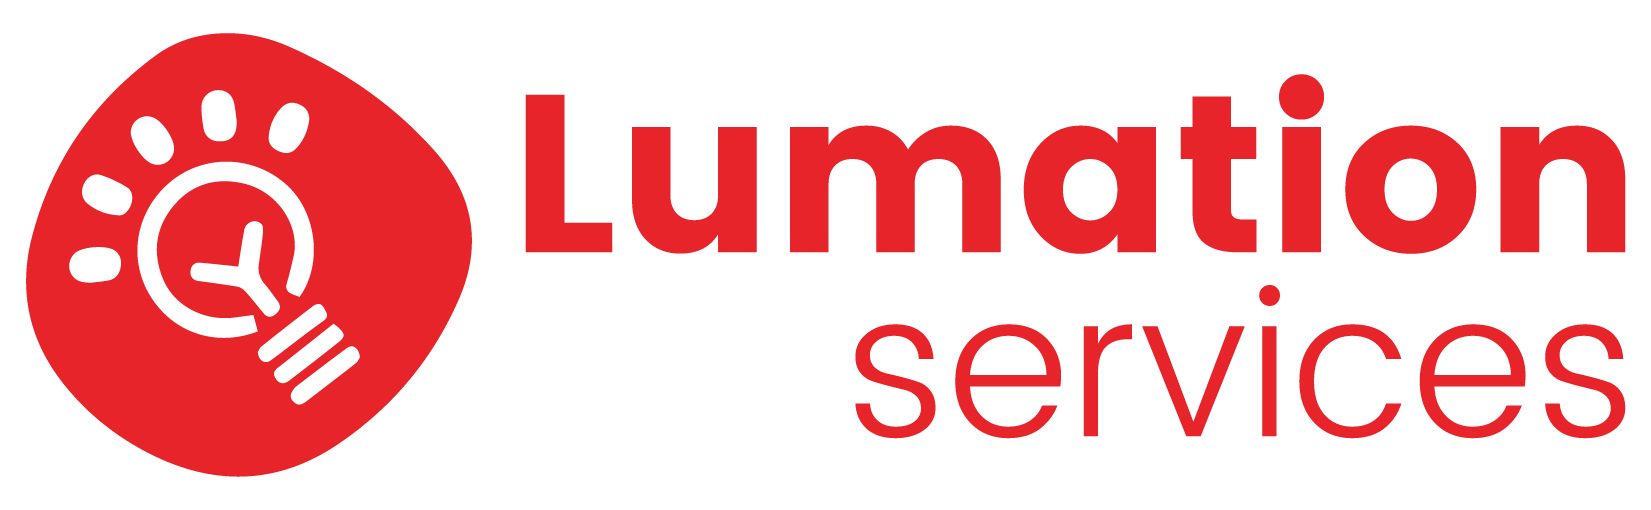 Lumation Services Logo